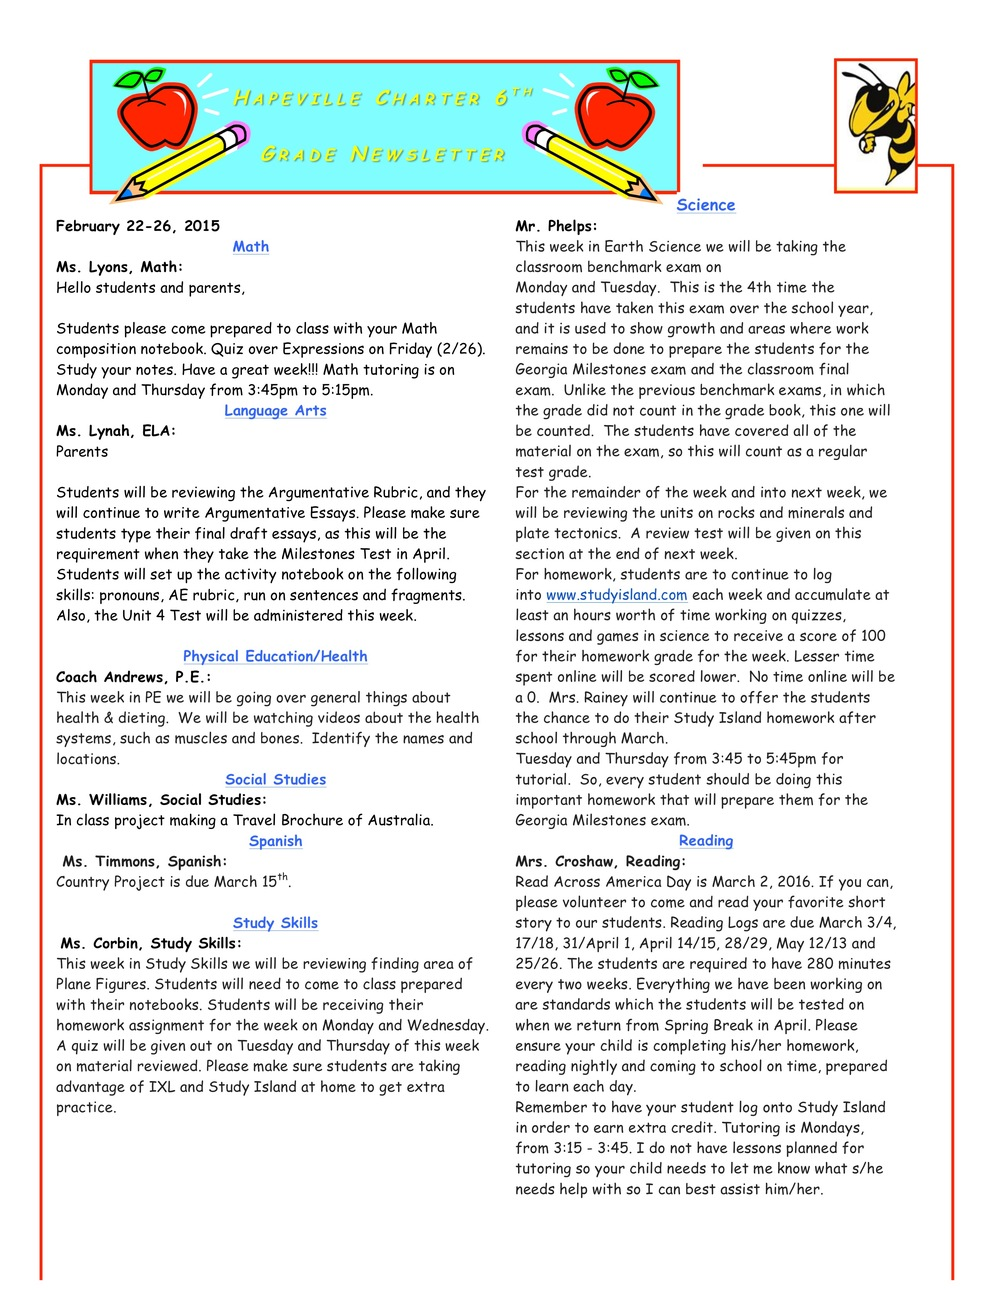 Newsletter 2.22.2016pdf-image.jpeg